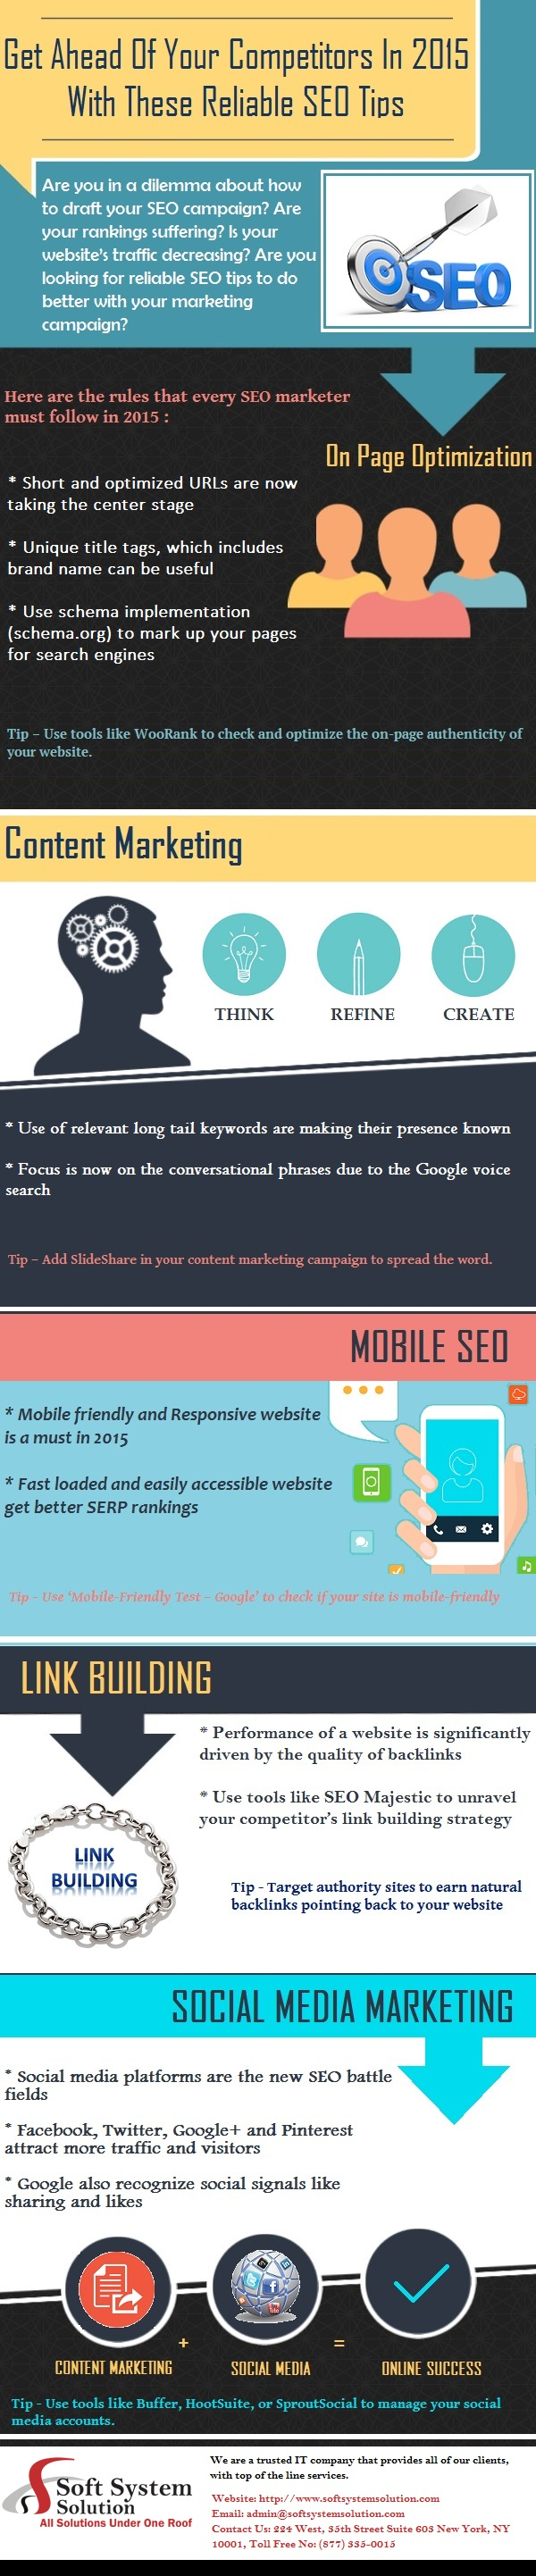 Get-Ahead-Of-Your-Competitors-In-2015-With-These-Reliable-SEO-Tips